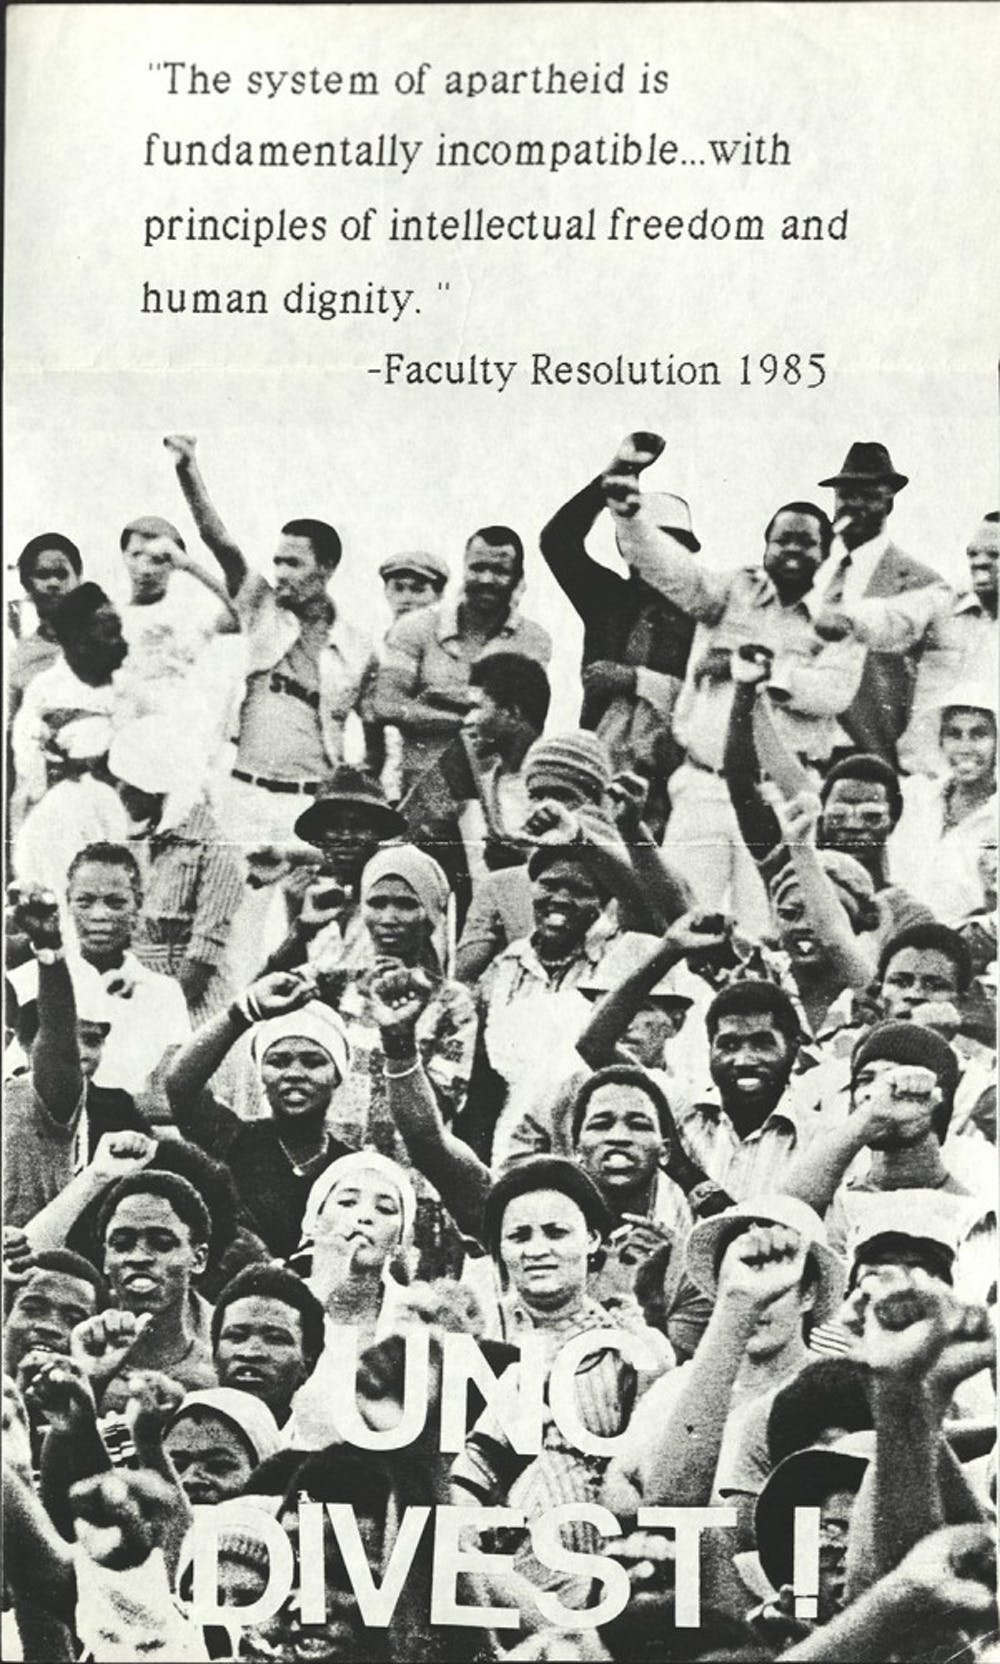 Student protests against Apartheid are part of a long history of activism